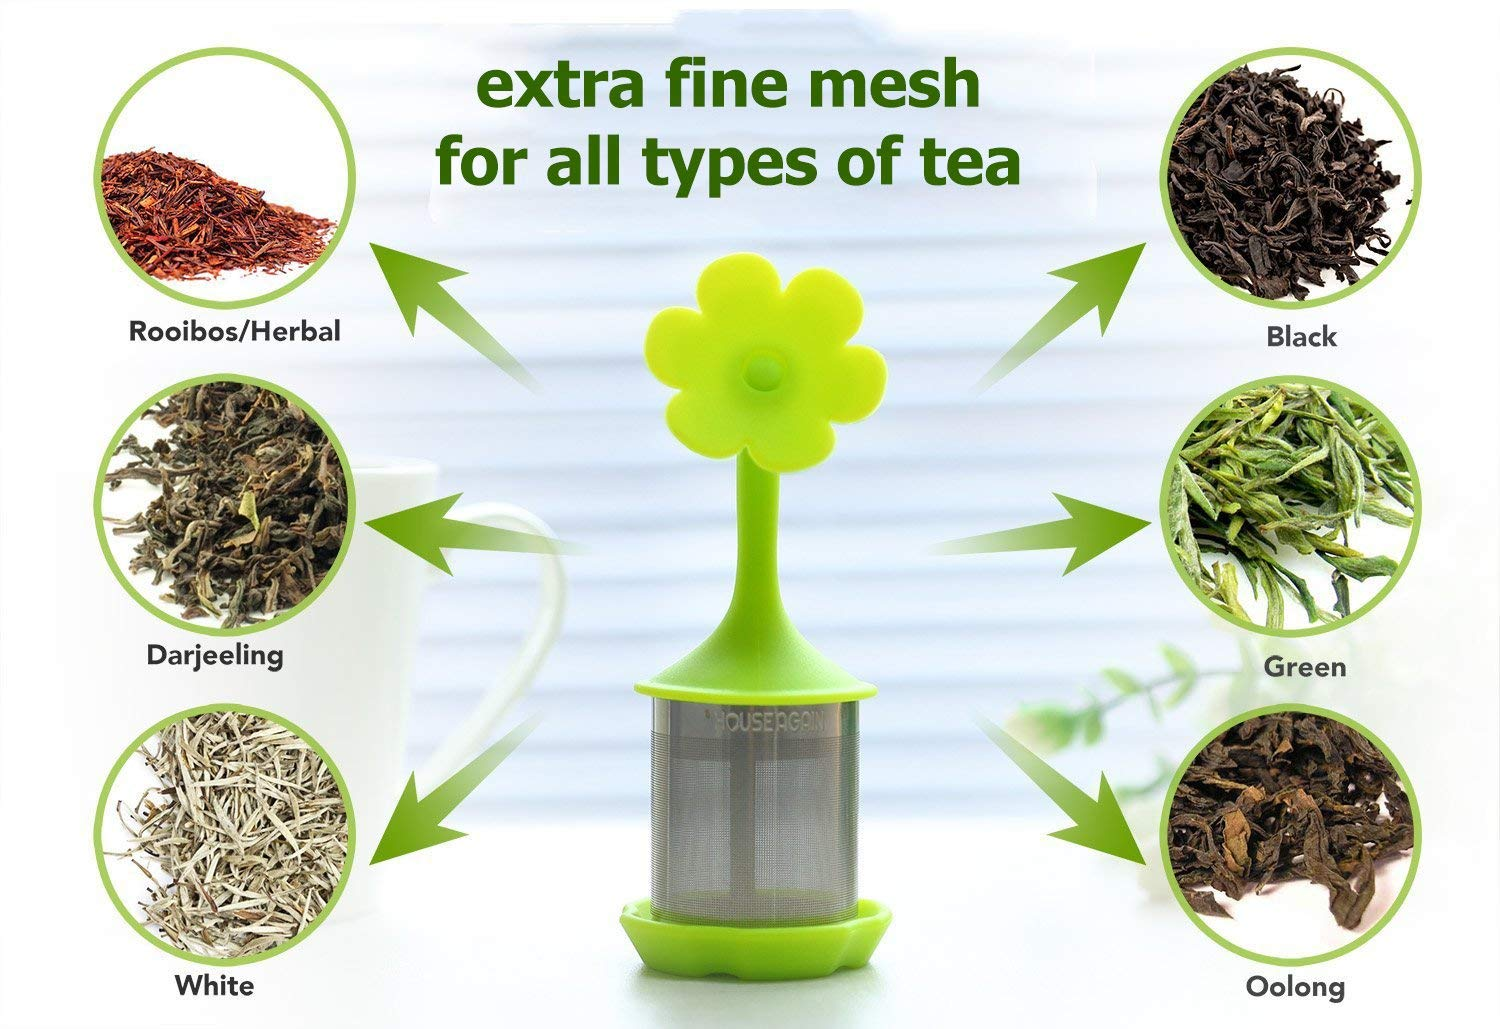 LLESS 4-pack Extra Fine Mesh Tea Infuser with Drip Tray - 18/8 Stainless Steel Fine Mesh Tea Cup with BPA-Free Silicone Lid - Perfect Tea Balls Tea Strainers